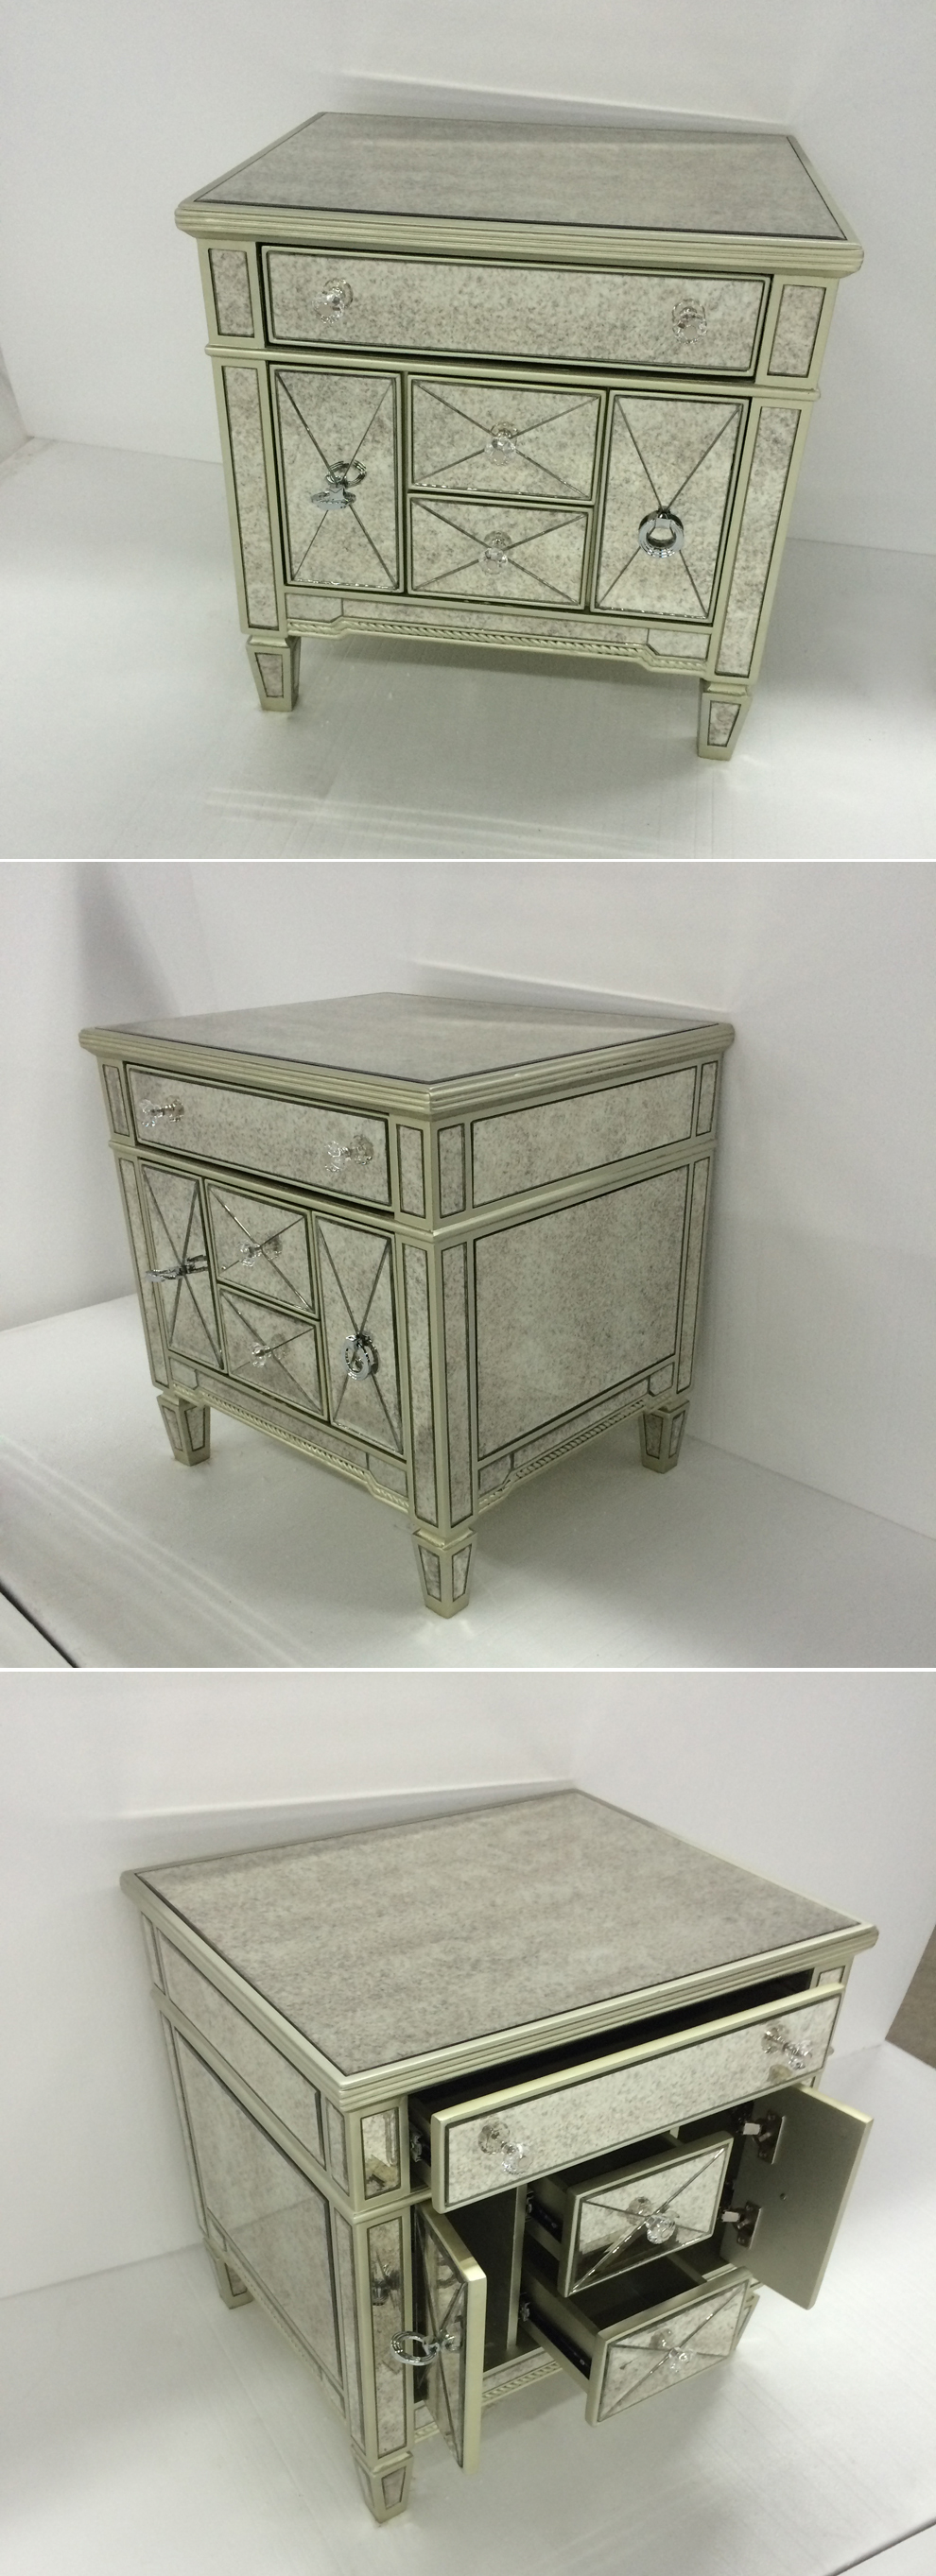 Hot Sale Mirrored Glass Nightstand With Antique Mirror Buy Glass Nightstand Hot Sale